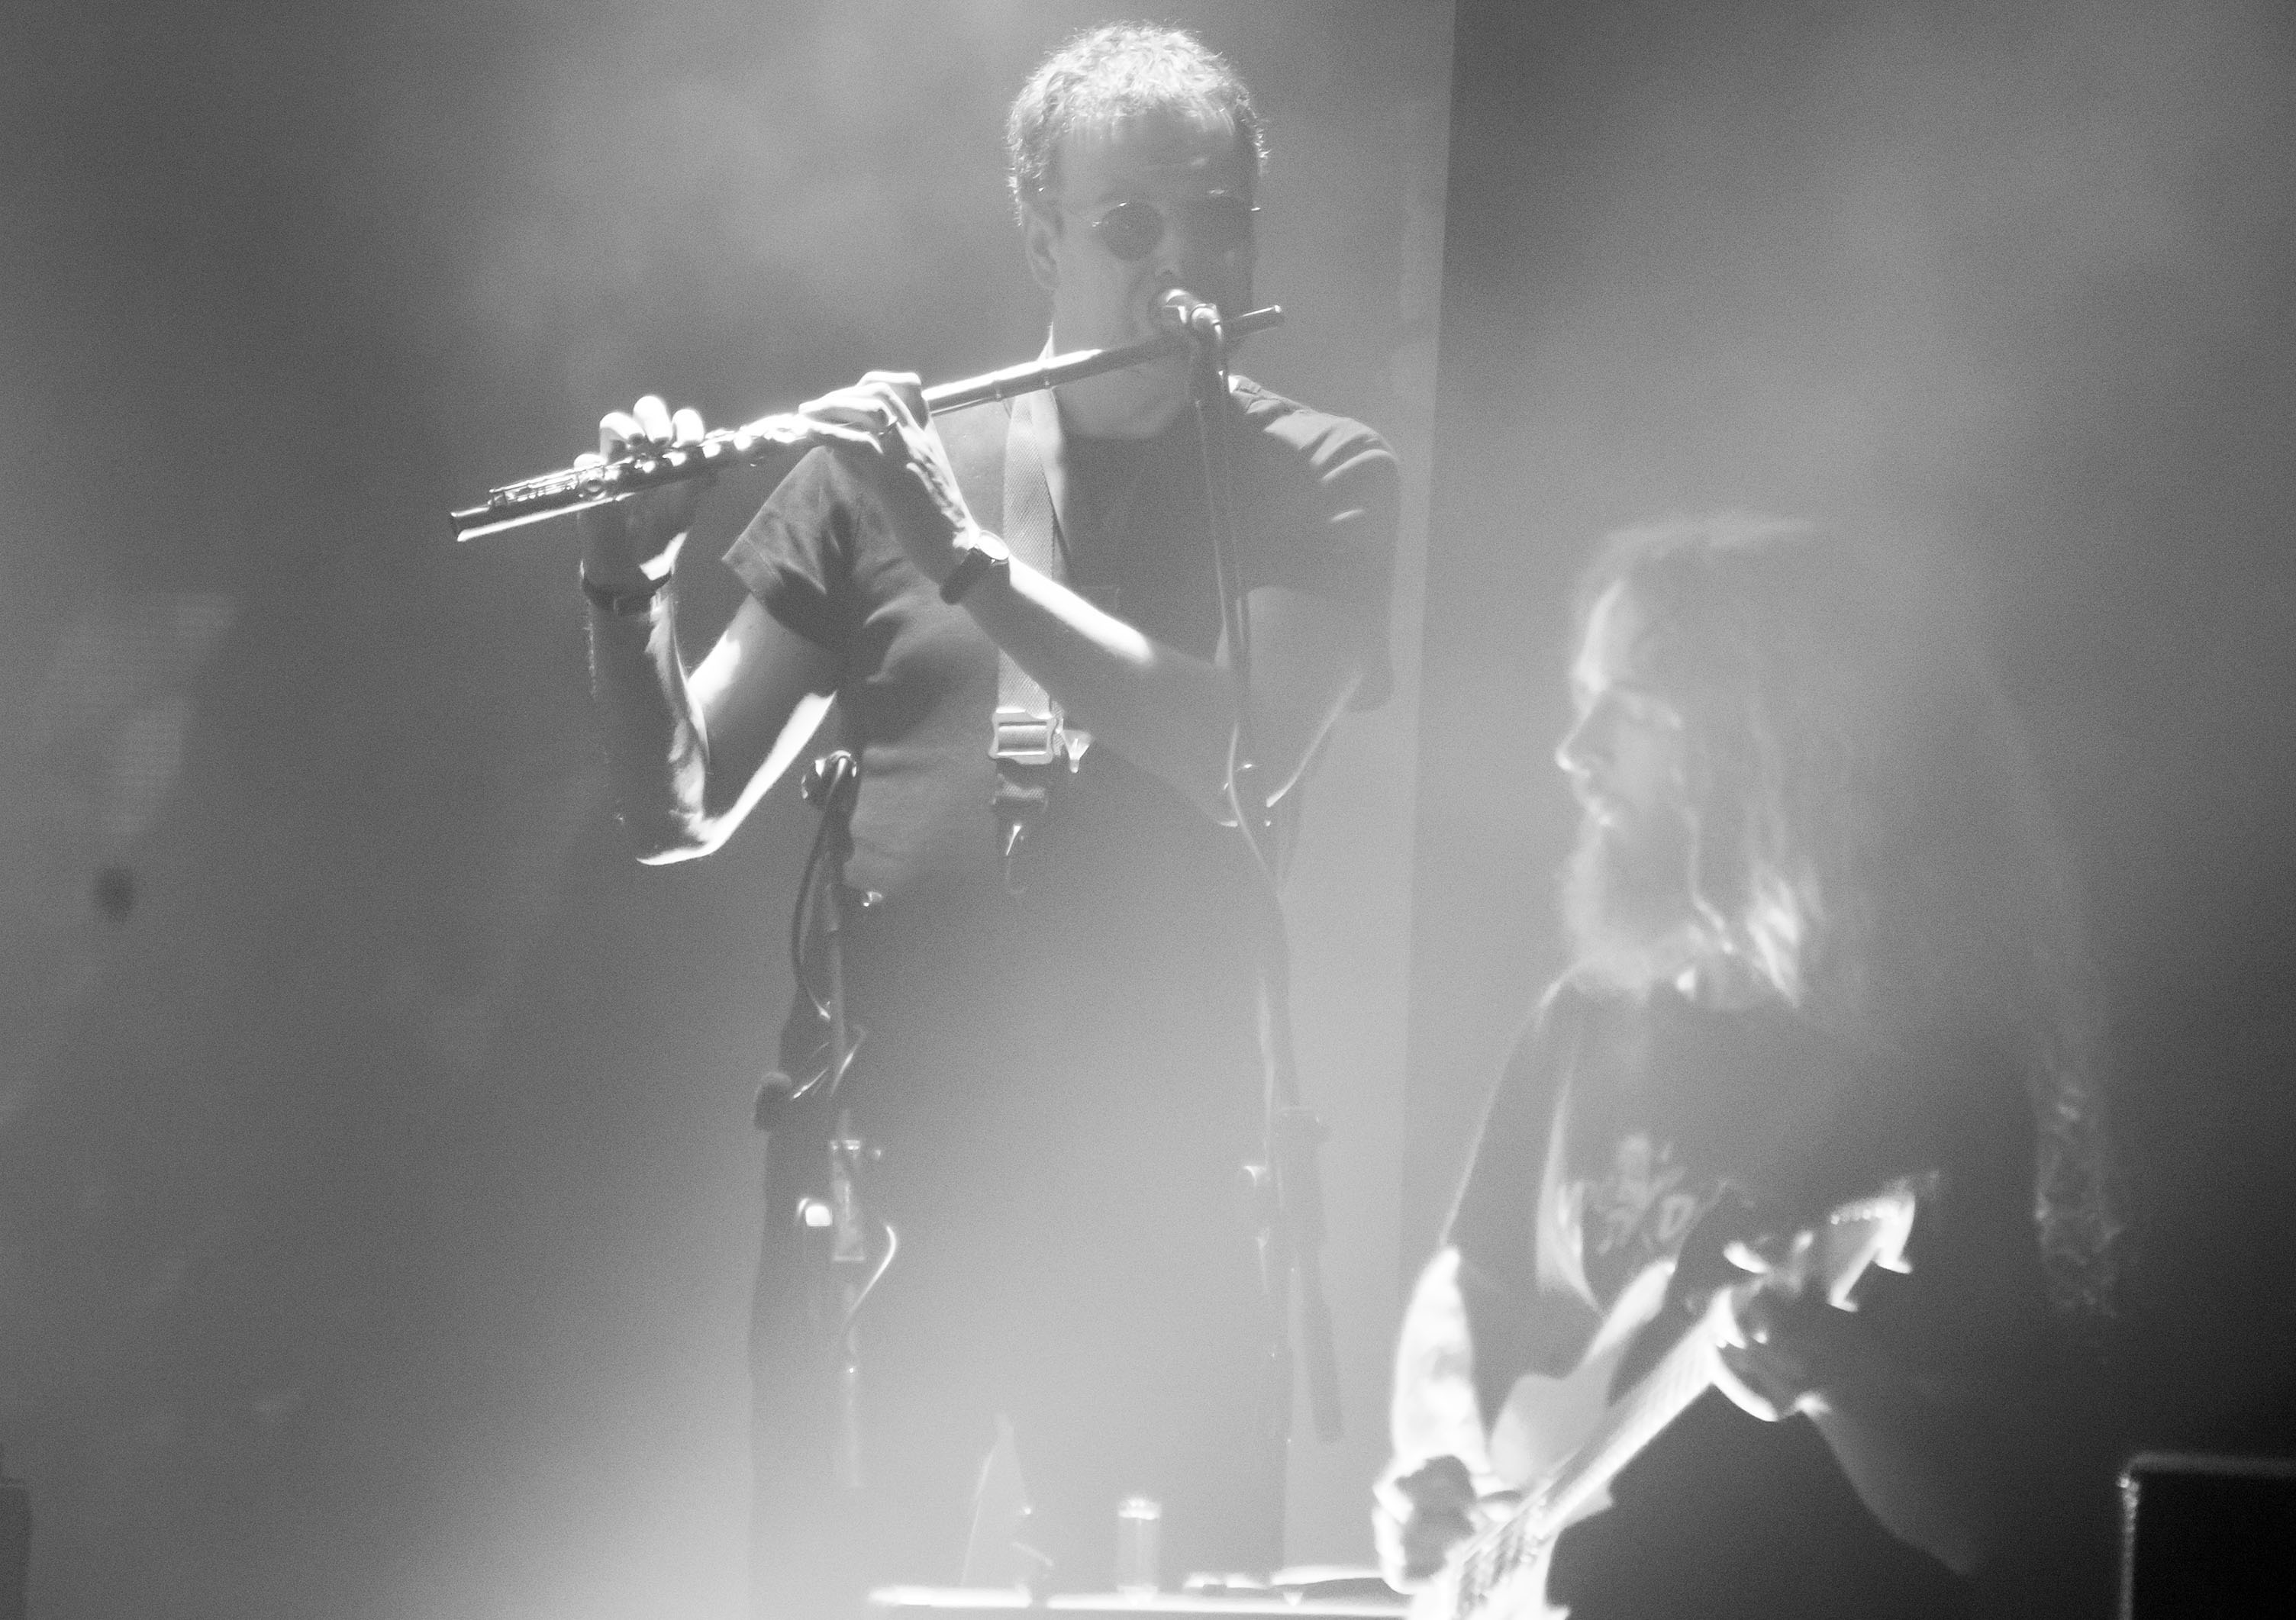 Steven wilson - performance, montreal, april 25, 2013